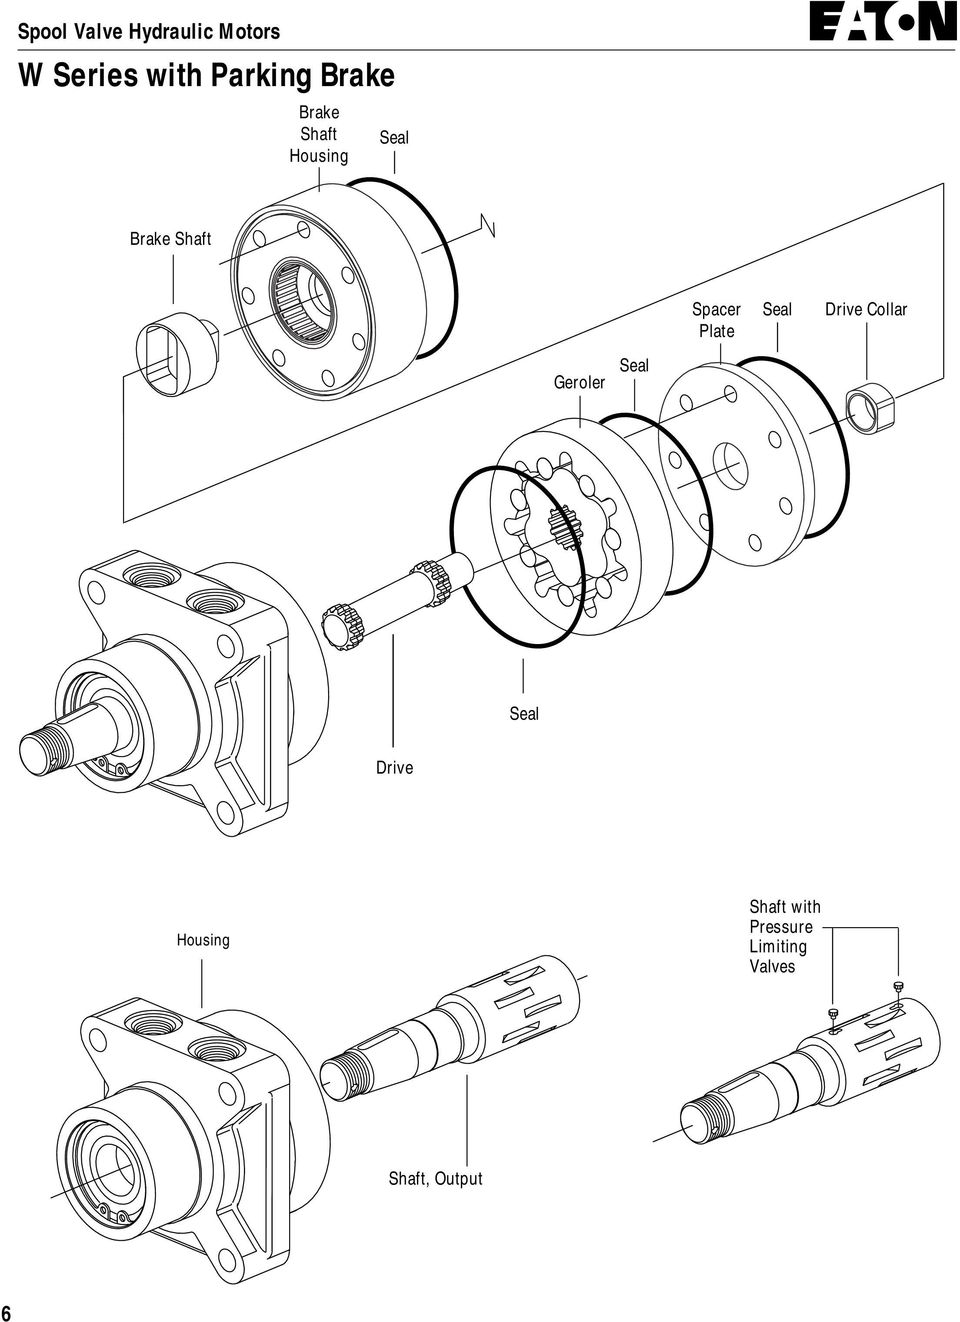 Drive Shaft with Pressure